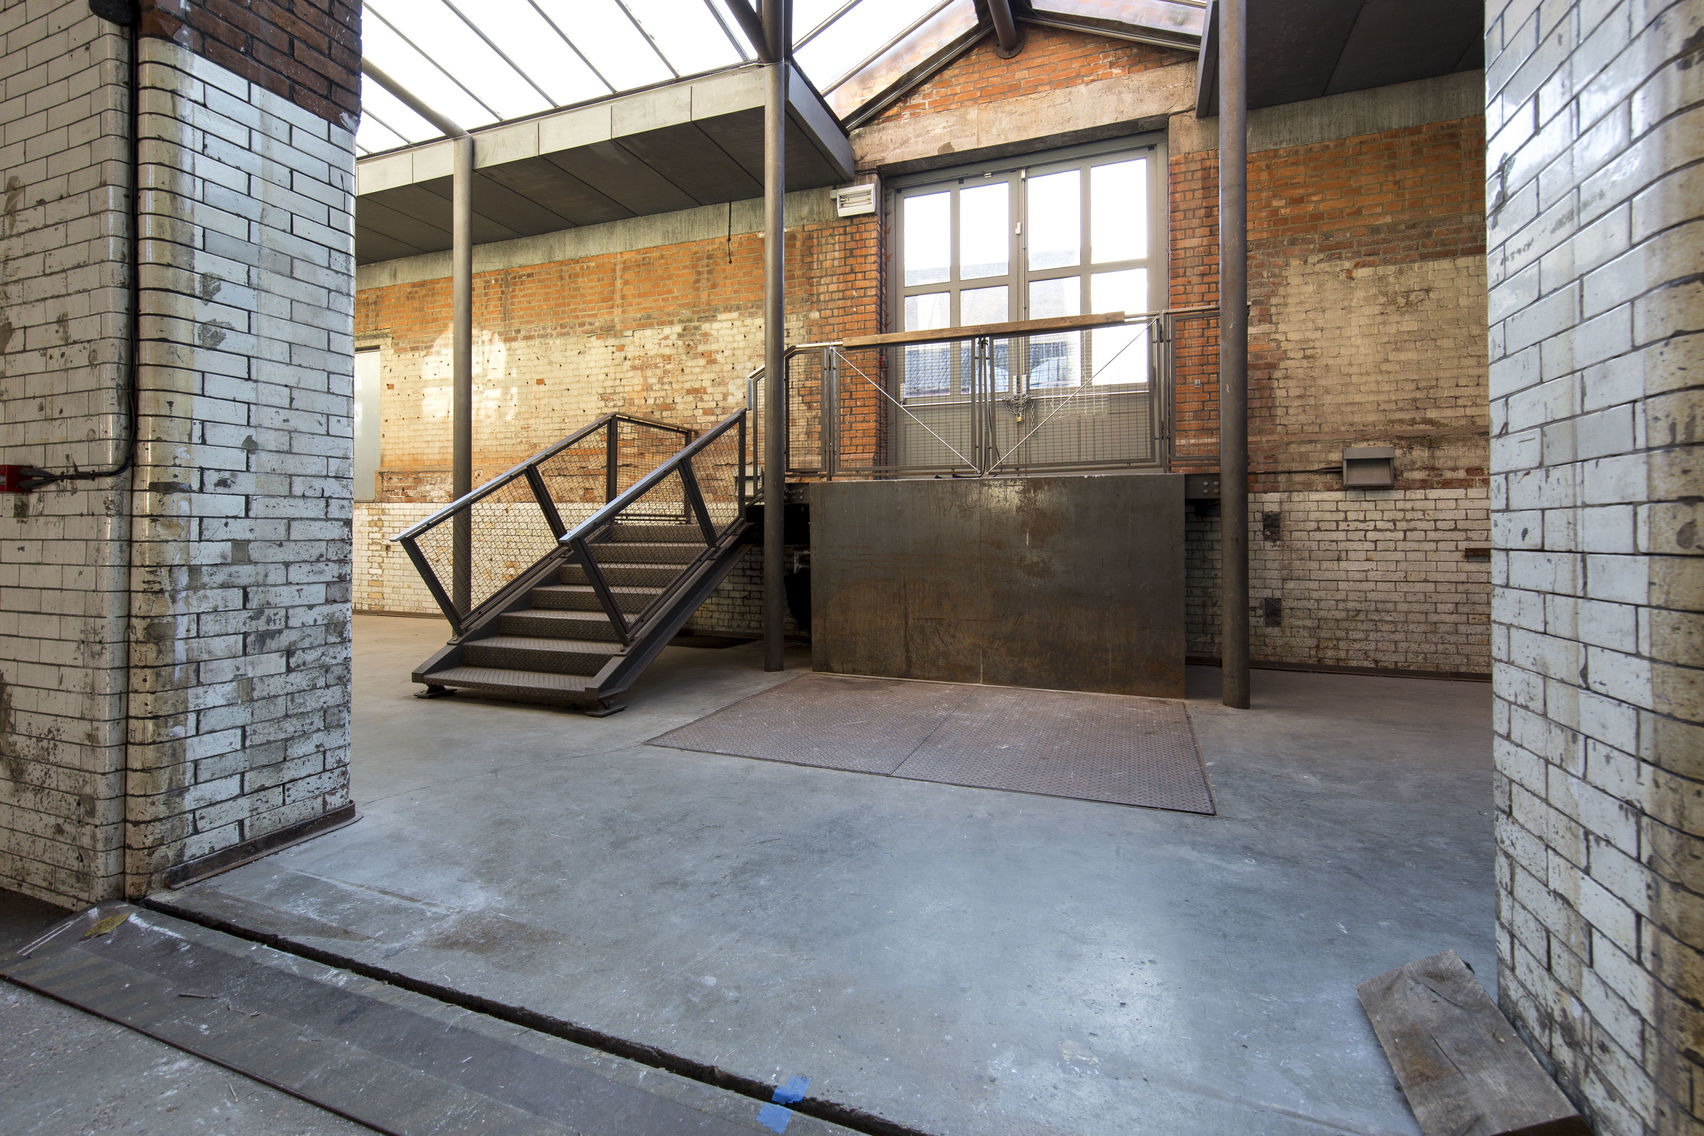 Metal staircase and window surrounded by exposed brickwork